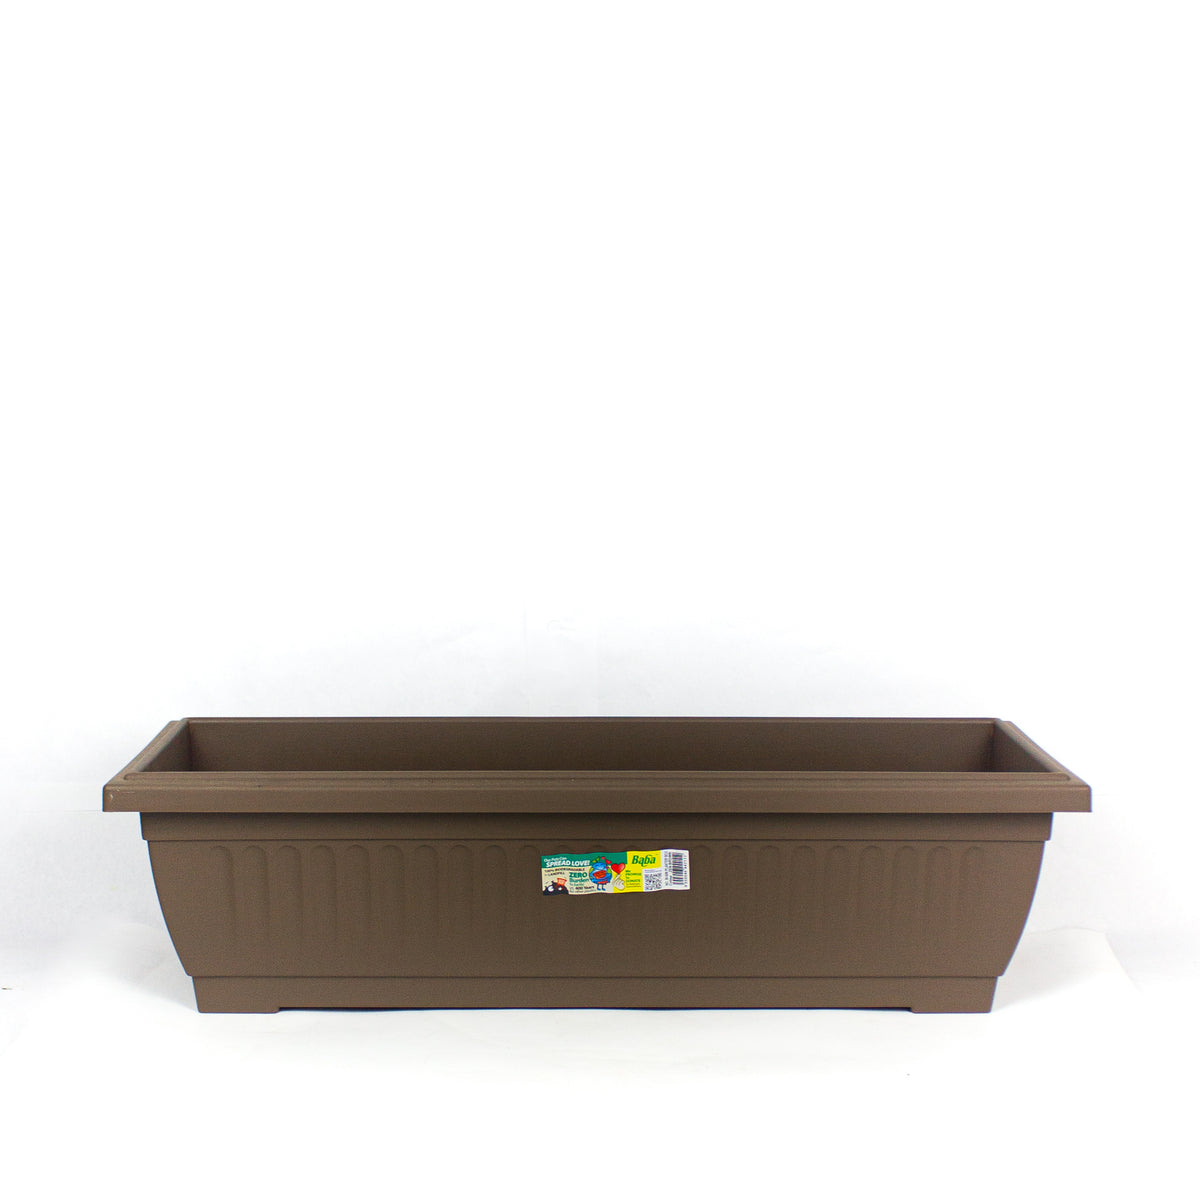 Baba BI-508 Planter Box